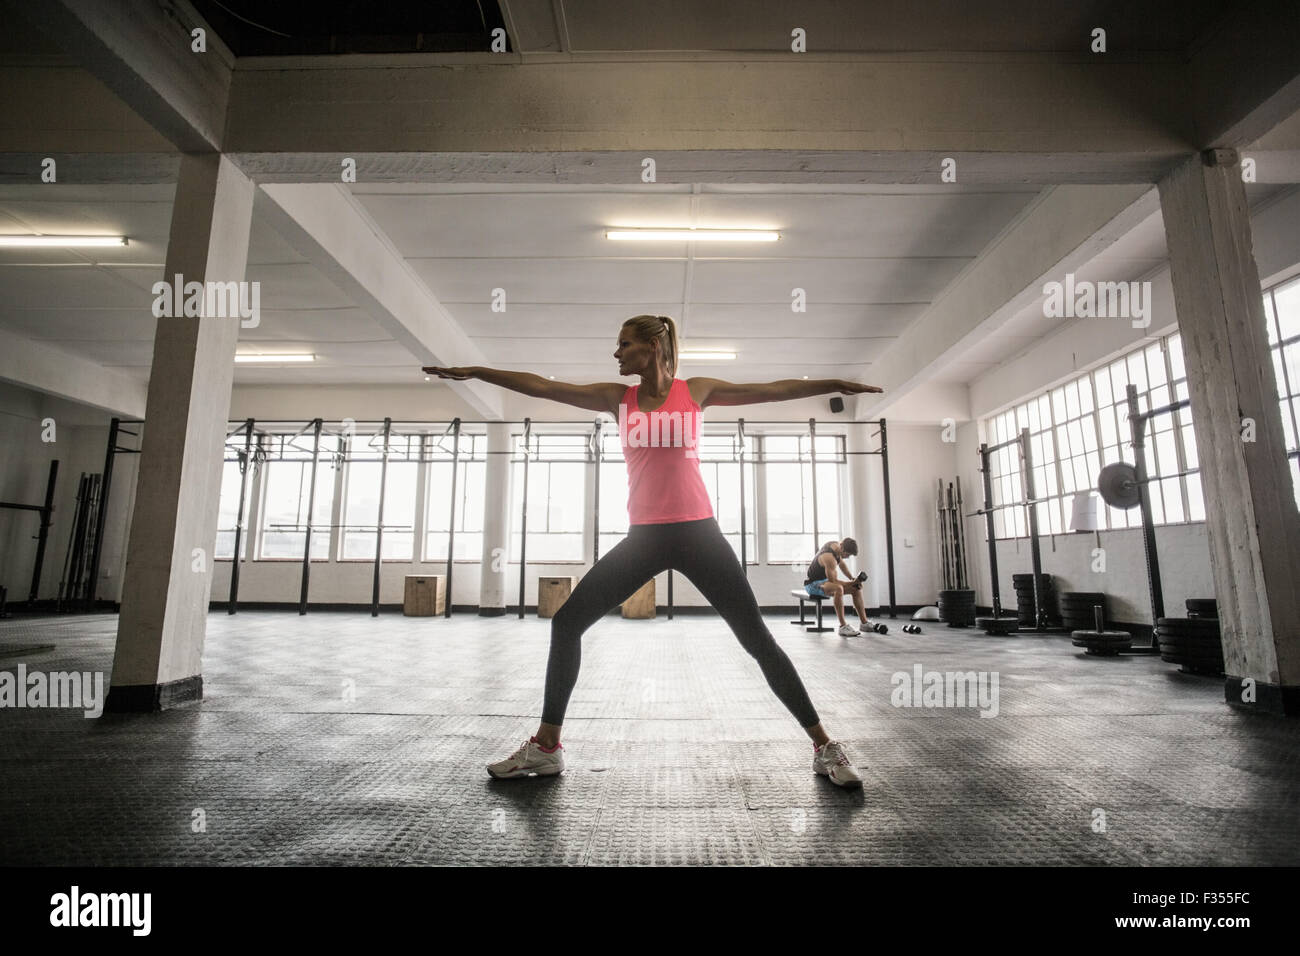 Fit Woman stretching-Übung zu tun Stockbild